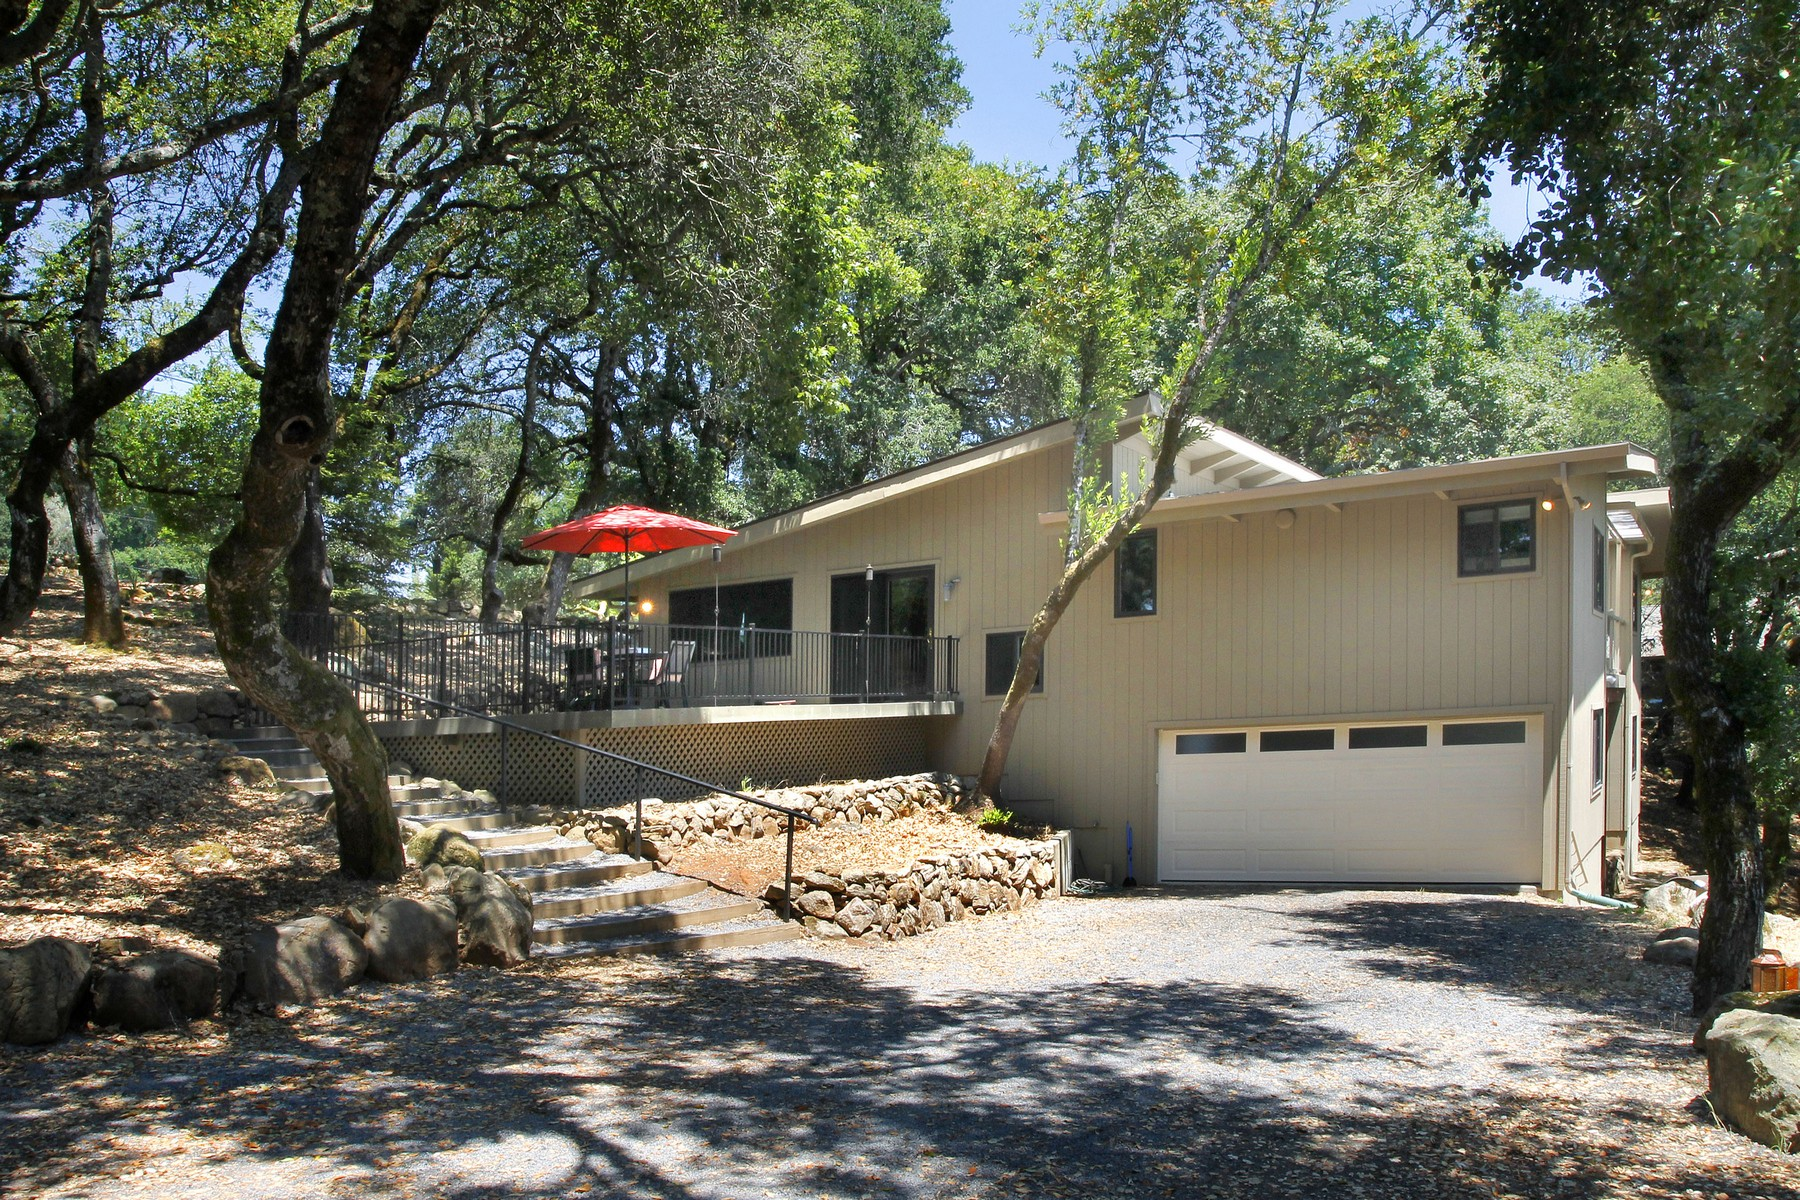 Single Family Home for Sale at Country Retreat 2934 Bardy Road Santa Rosa, California 95404 United States